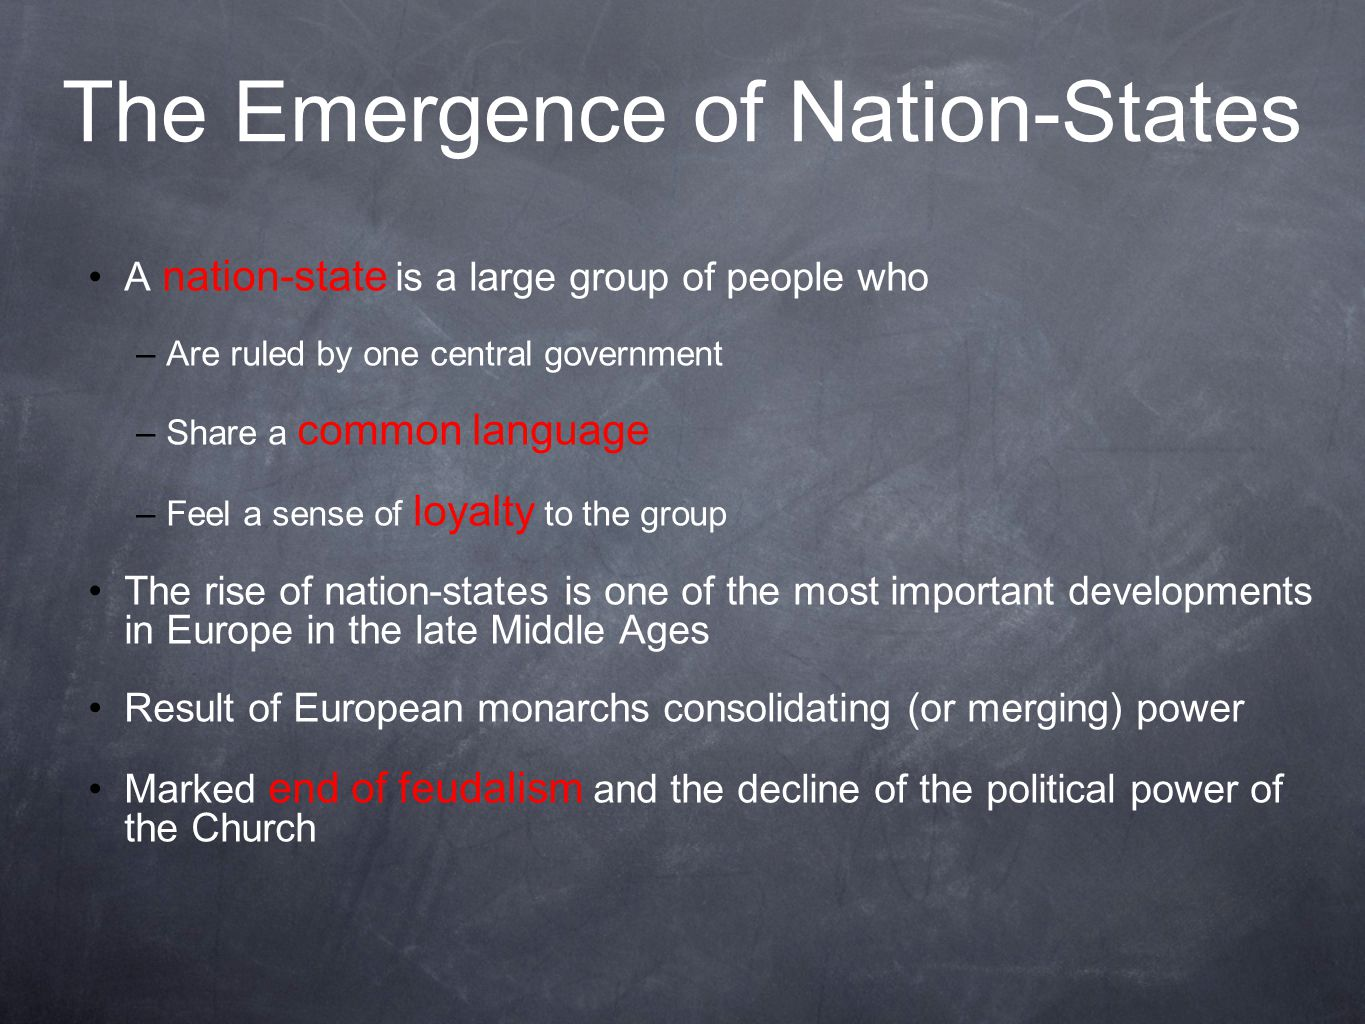 The Emergence of Nation-States